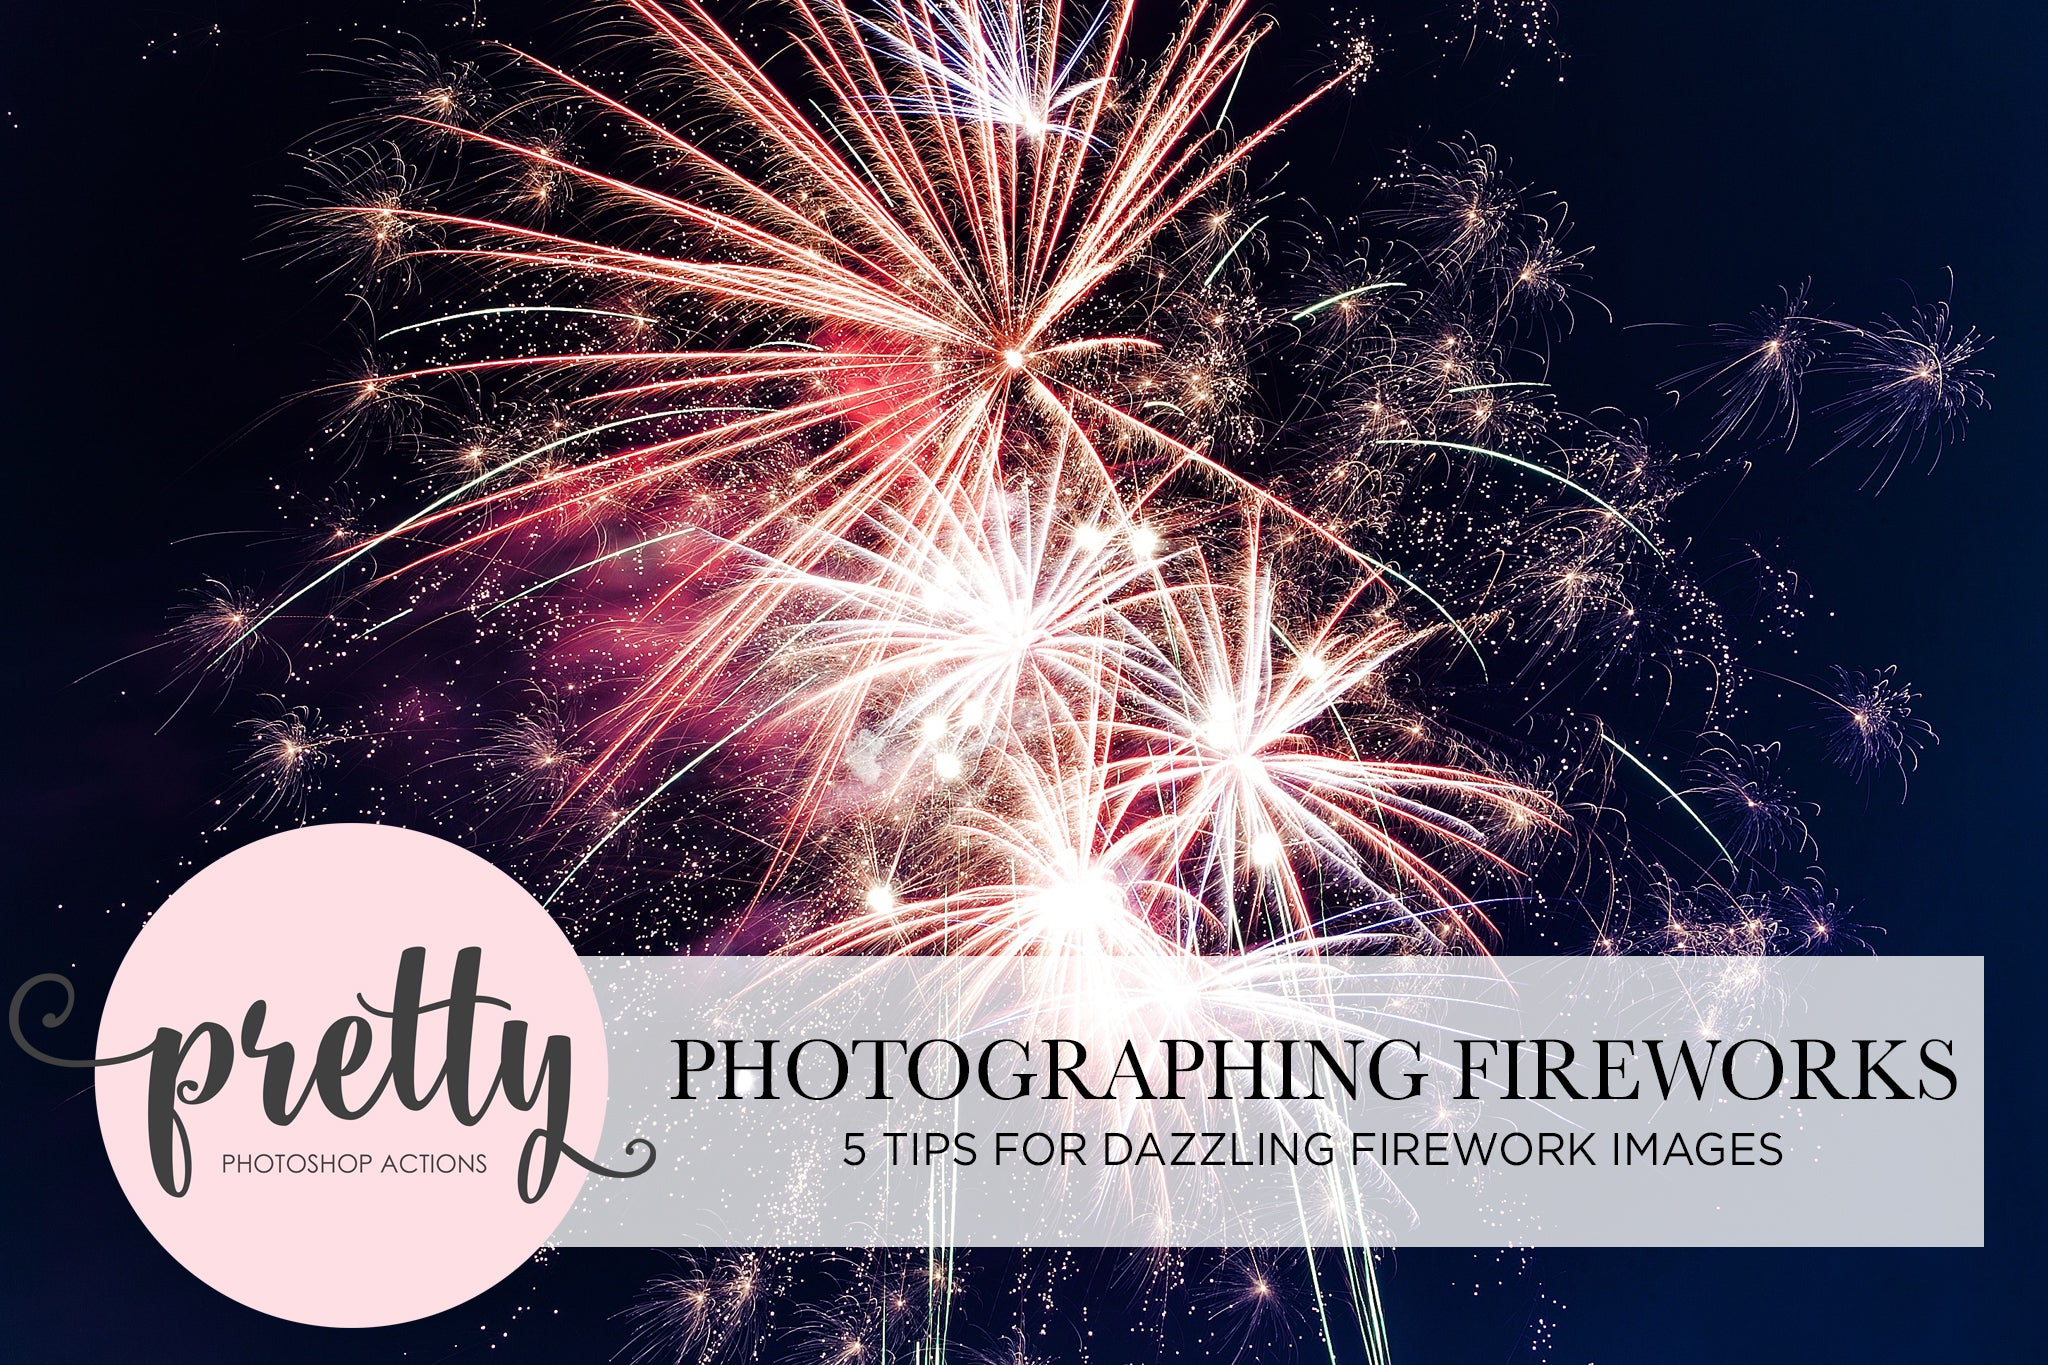 Photographing Fireworks 5 tips for dazzling firework photos